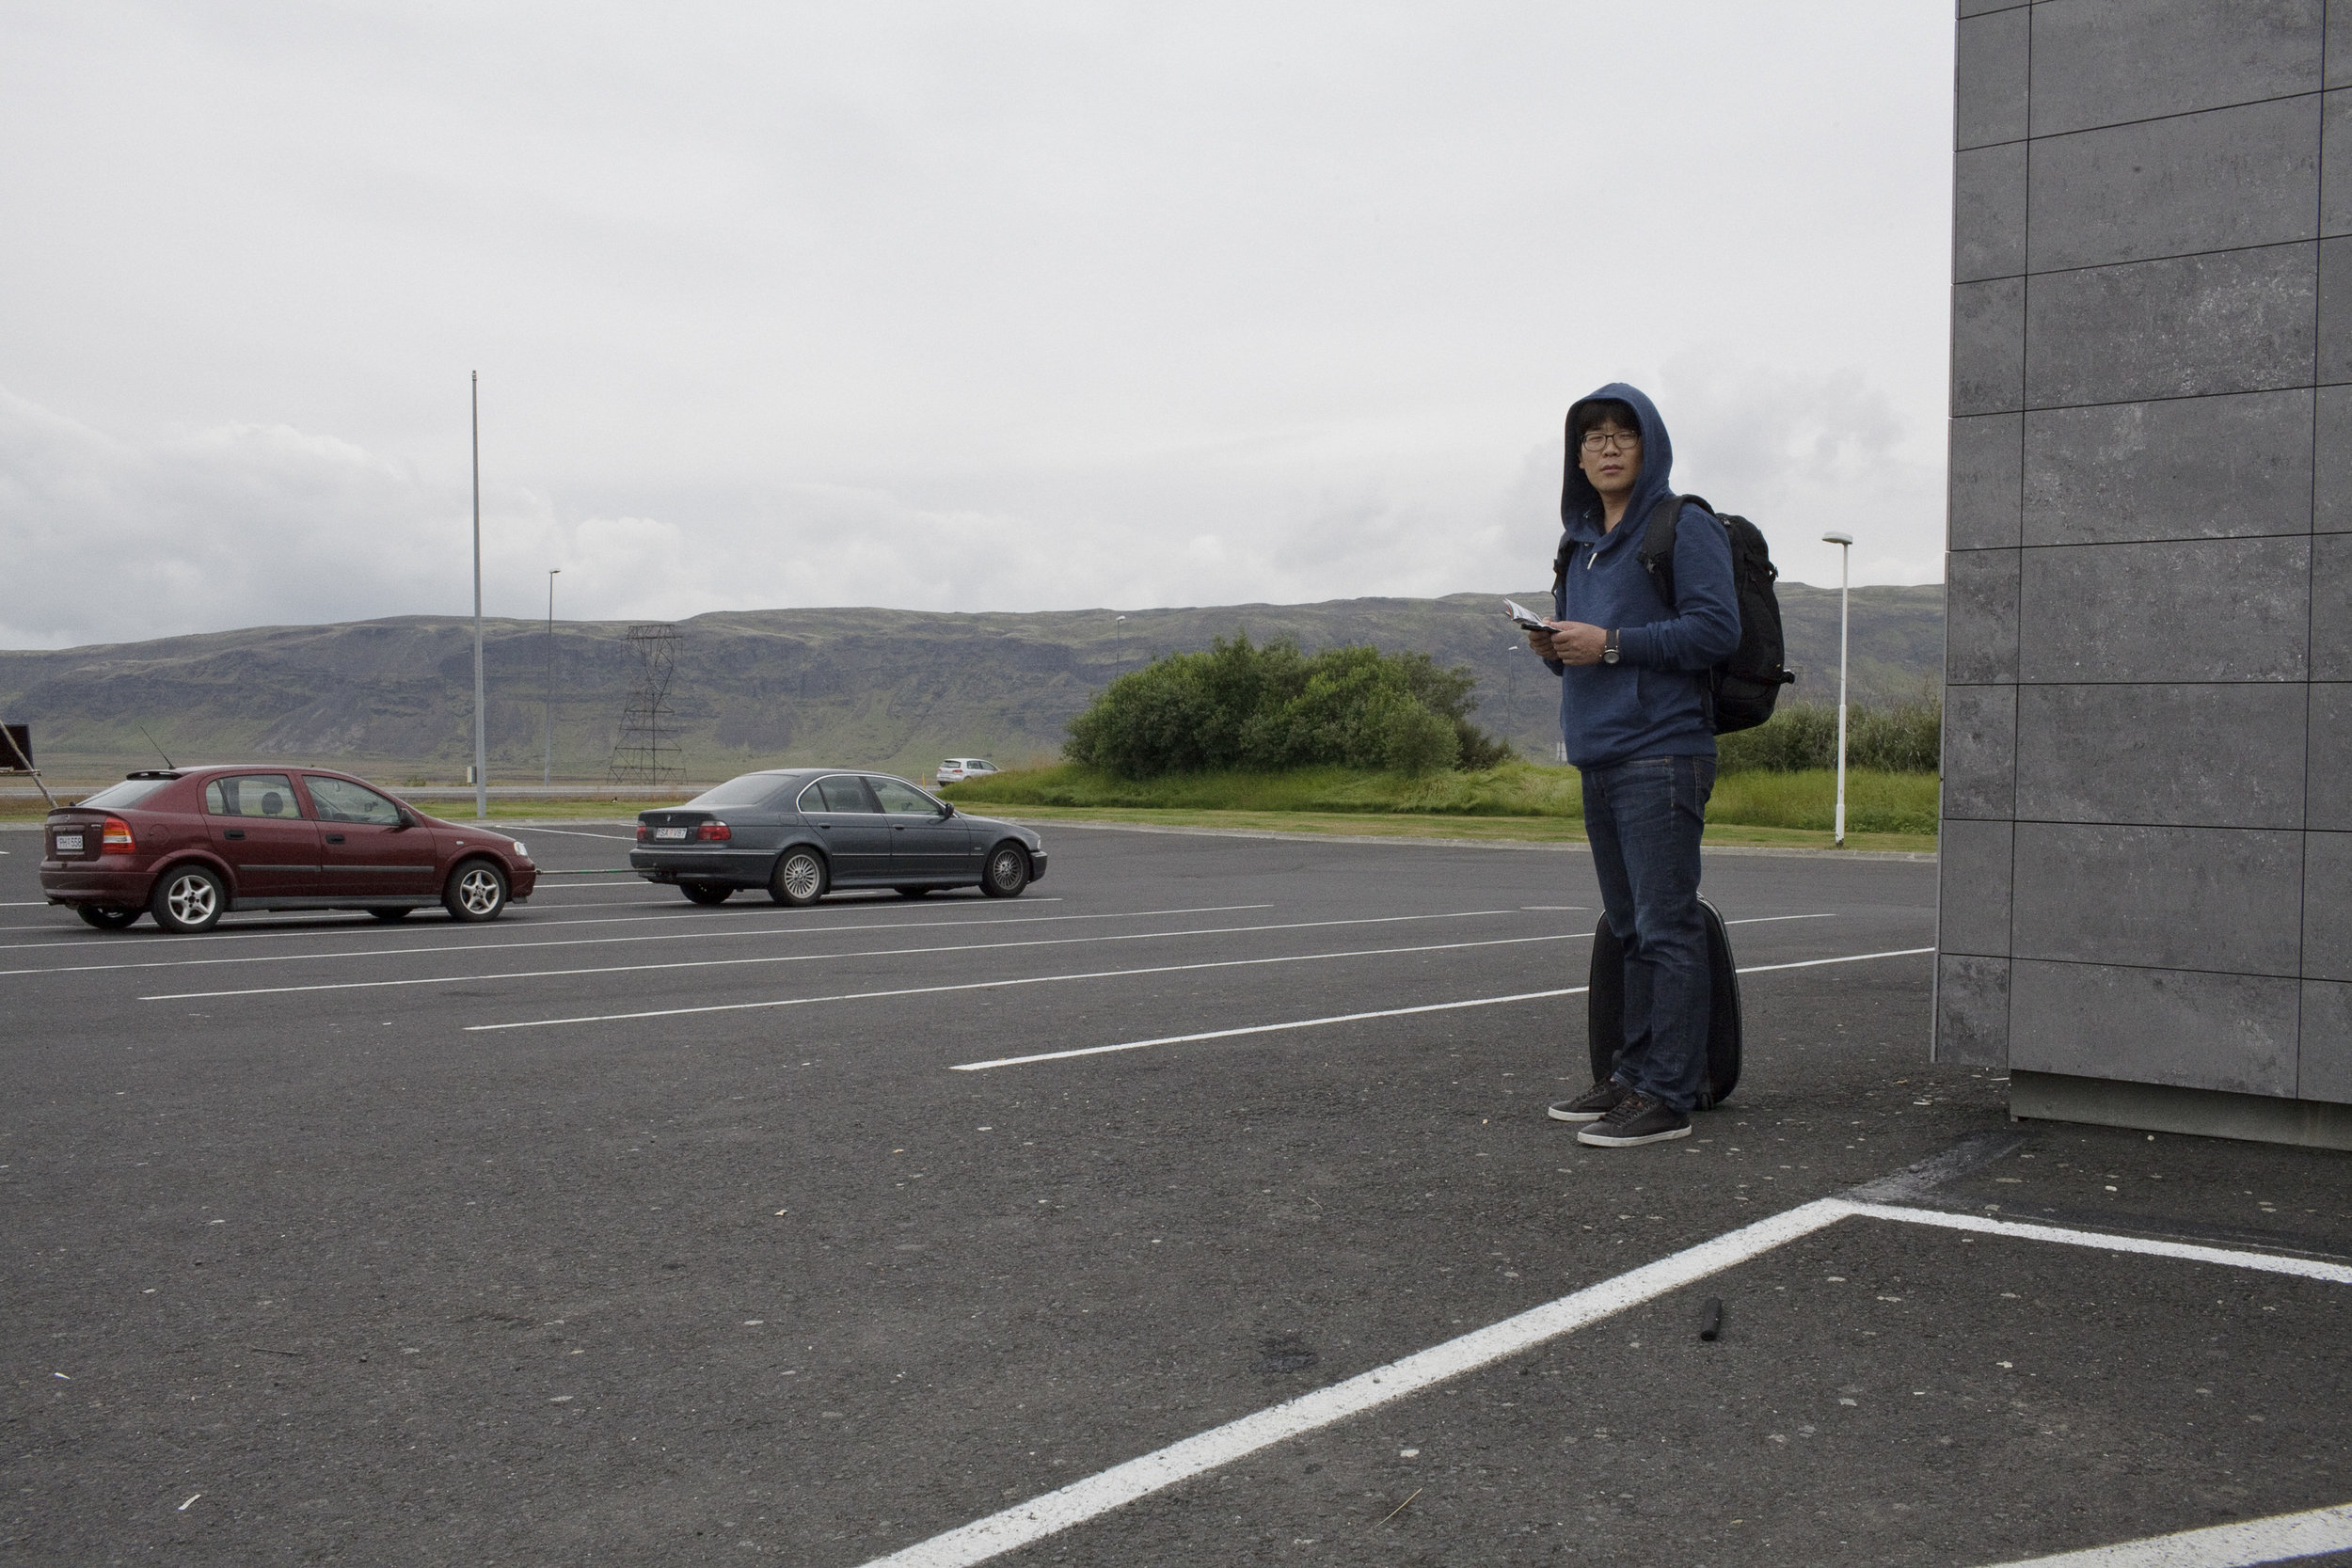 A tourist waits for the bus outside of a gas station in Hveragerdi.